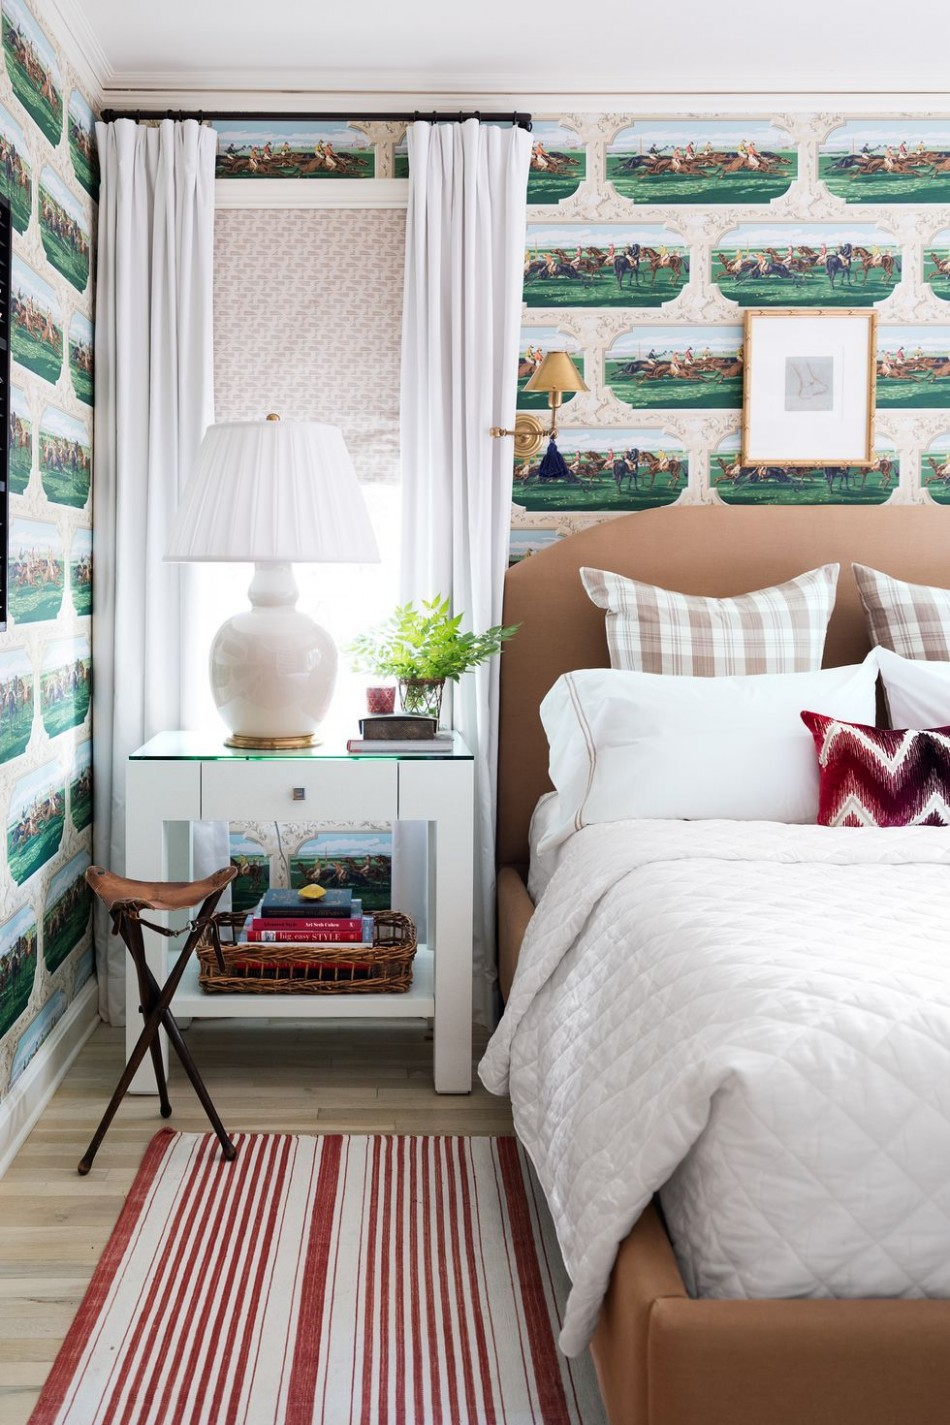 9 Small Bedroom Design Ideas - How to Decorate a Small Bedroom - Bedroom Ideas Small